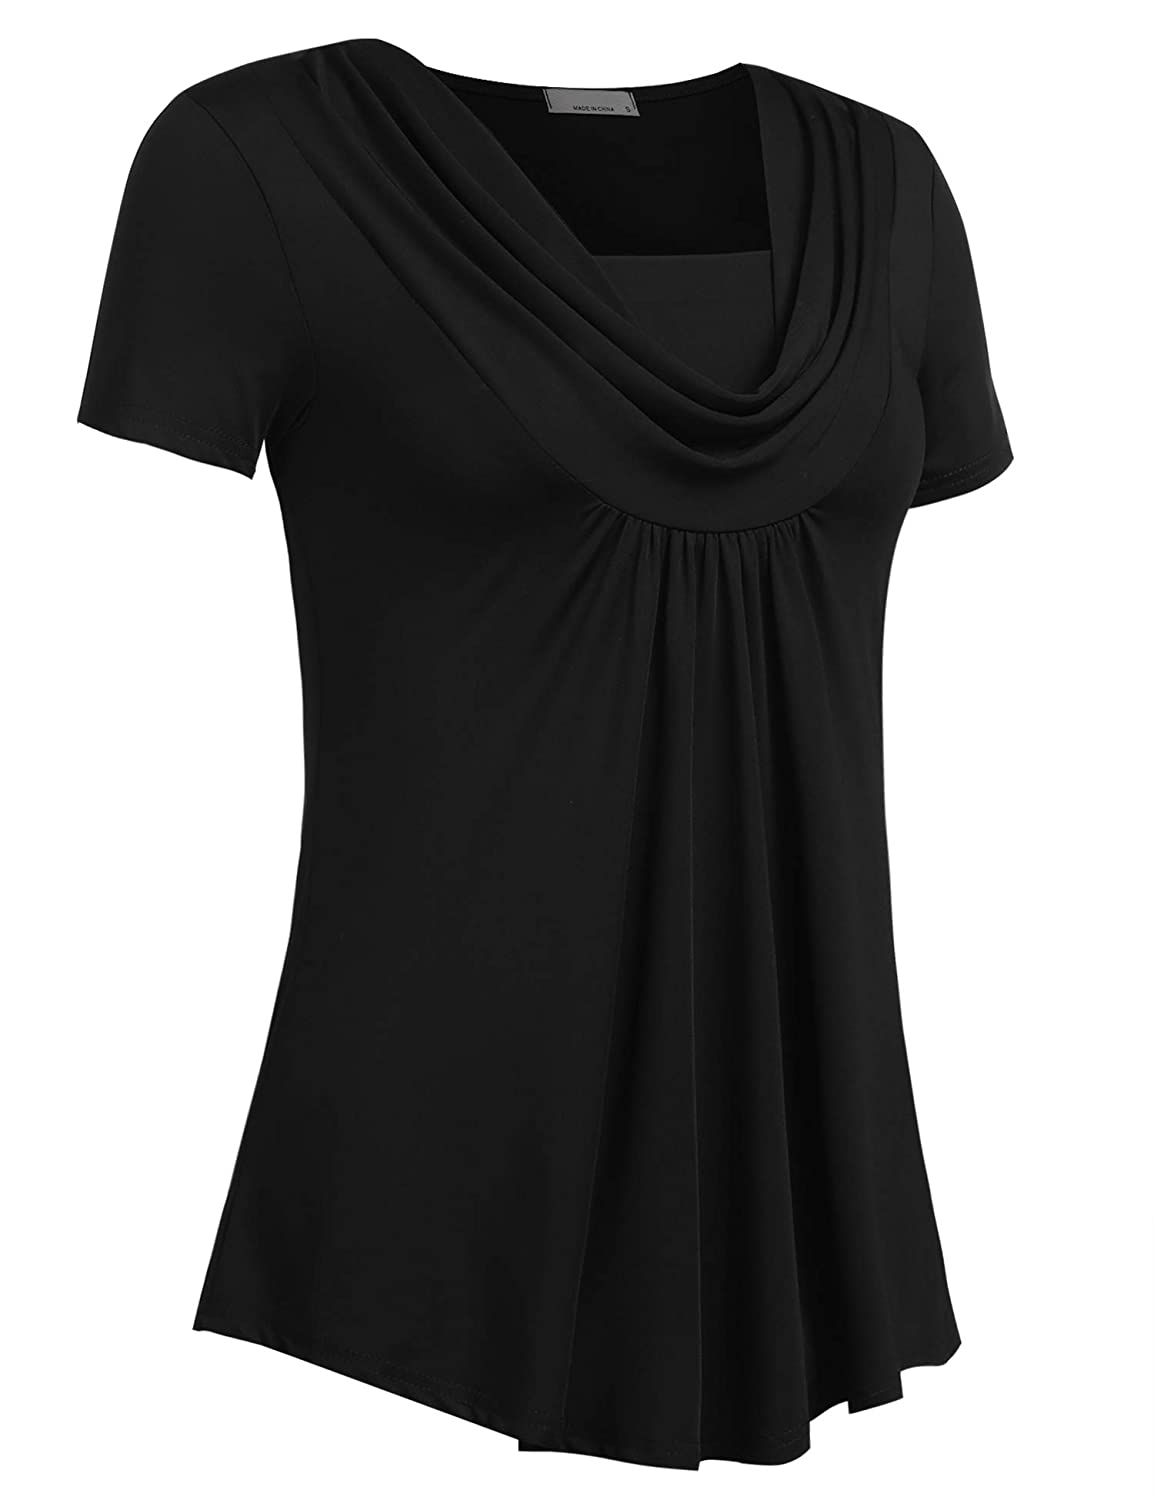 4f4db1f8801 Mofavor Women's Cowl Neck Tunics Short Sleeve Swing Blouse Top Flowy Shirt  at Amazon Women's Clothing store: